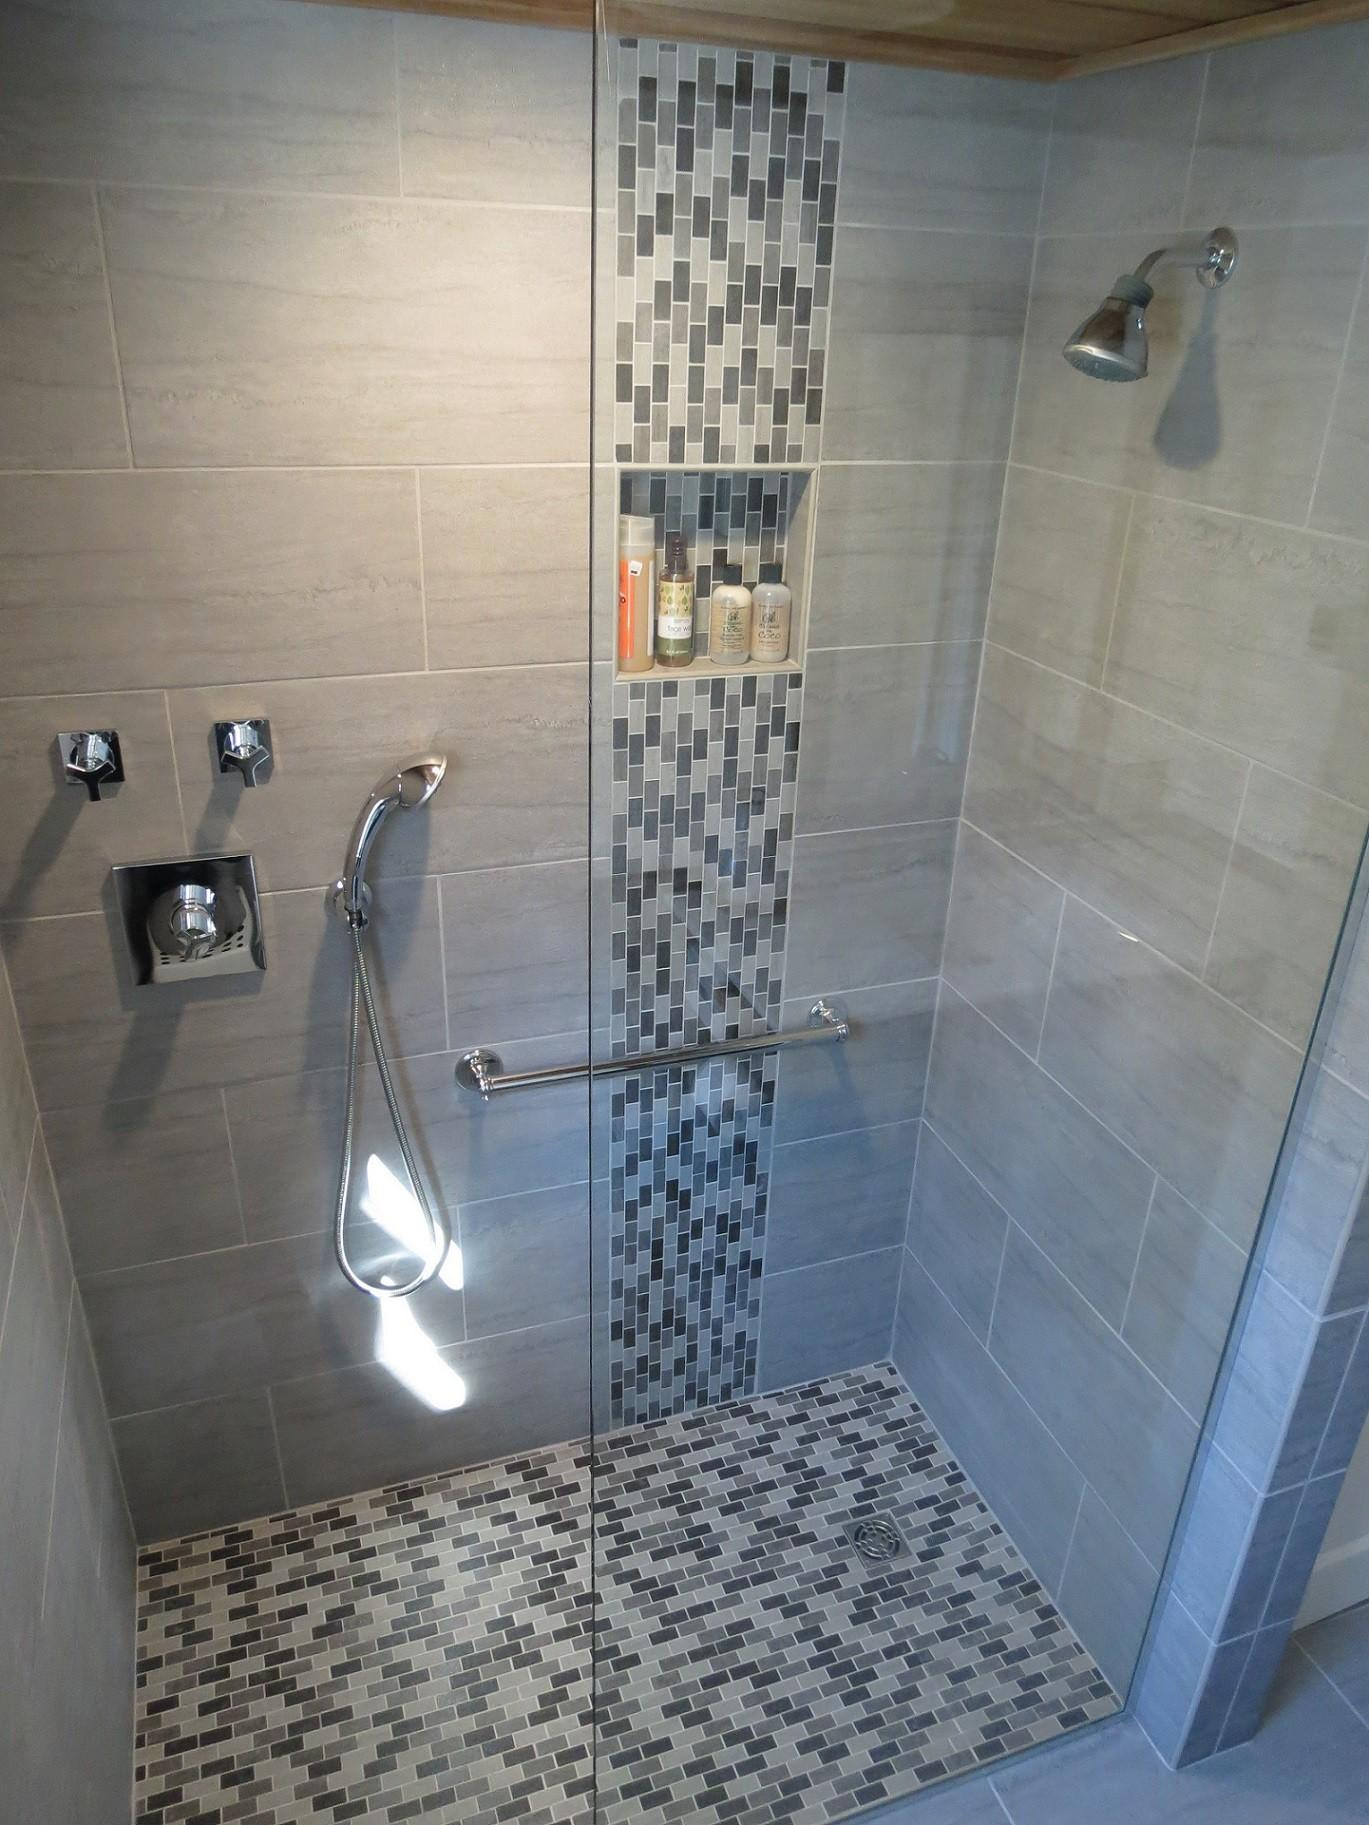 44 Mind Blowing Bathroom Tile Decorating Ideas That Will Inspire You For Sure Pictures Decoratorist